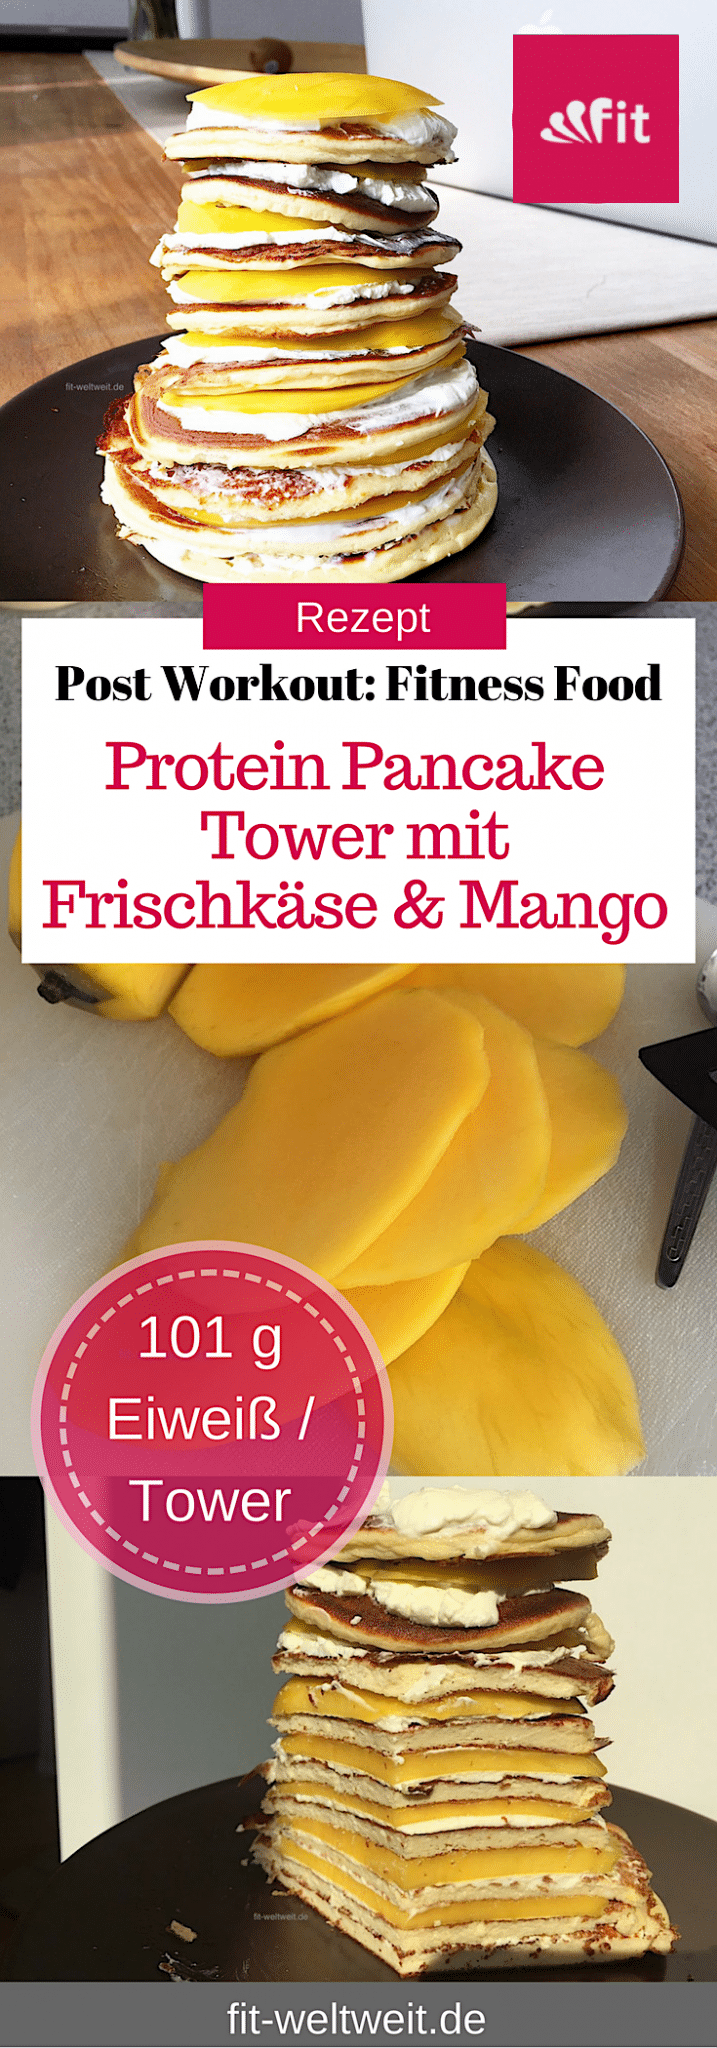 rezept protein pancake tower mit frischk se und mango. Black Bedroom Furniture Sets. Home Design Ideas